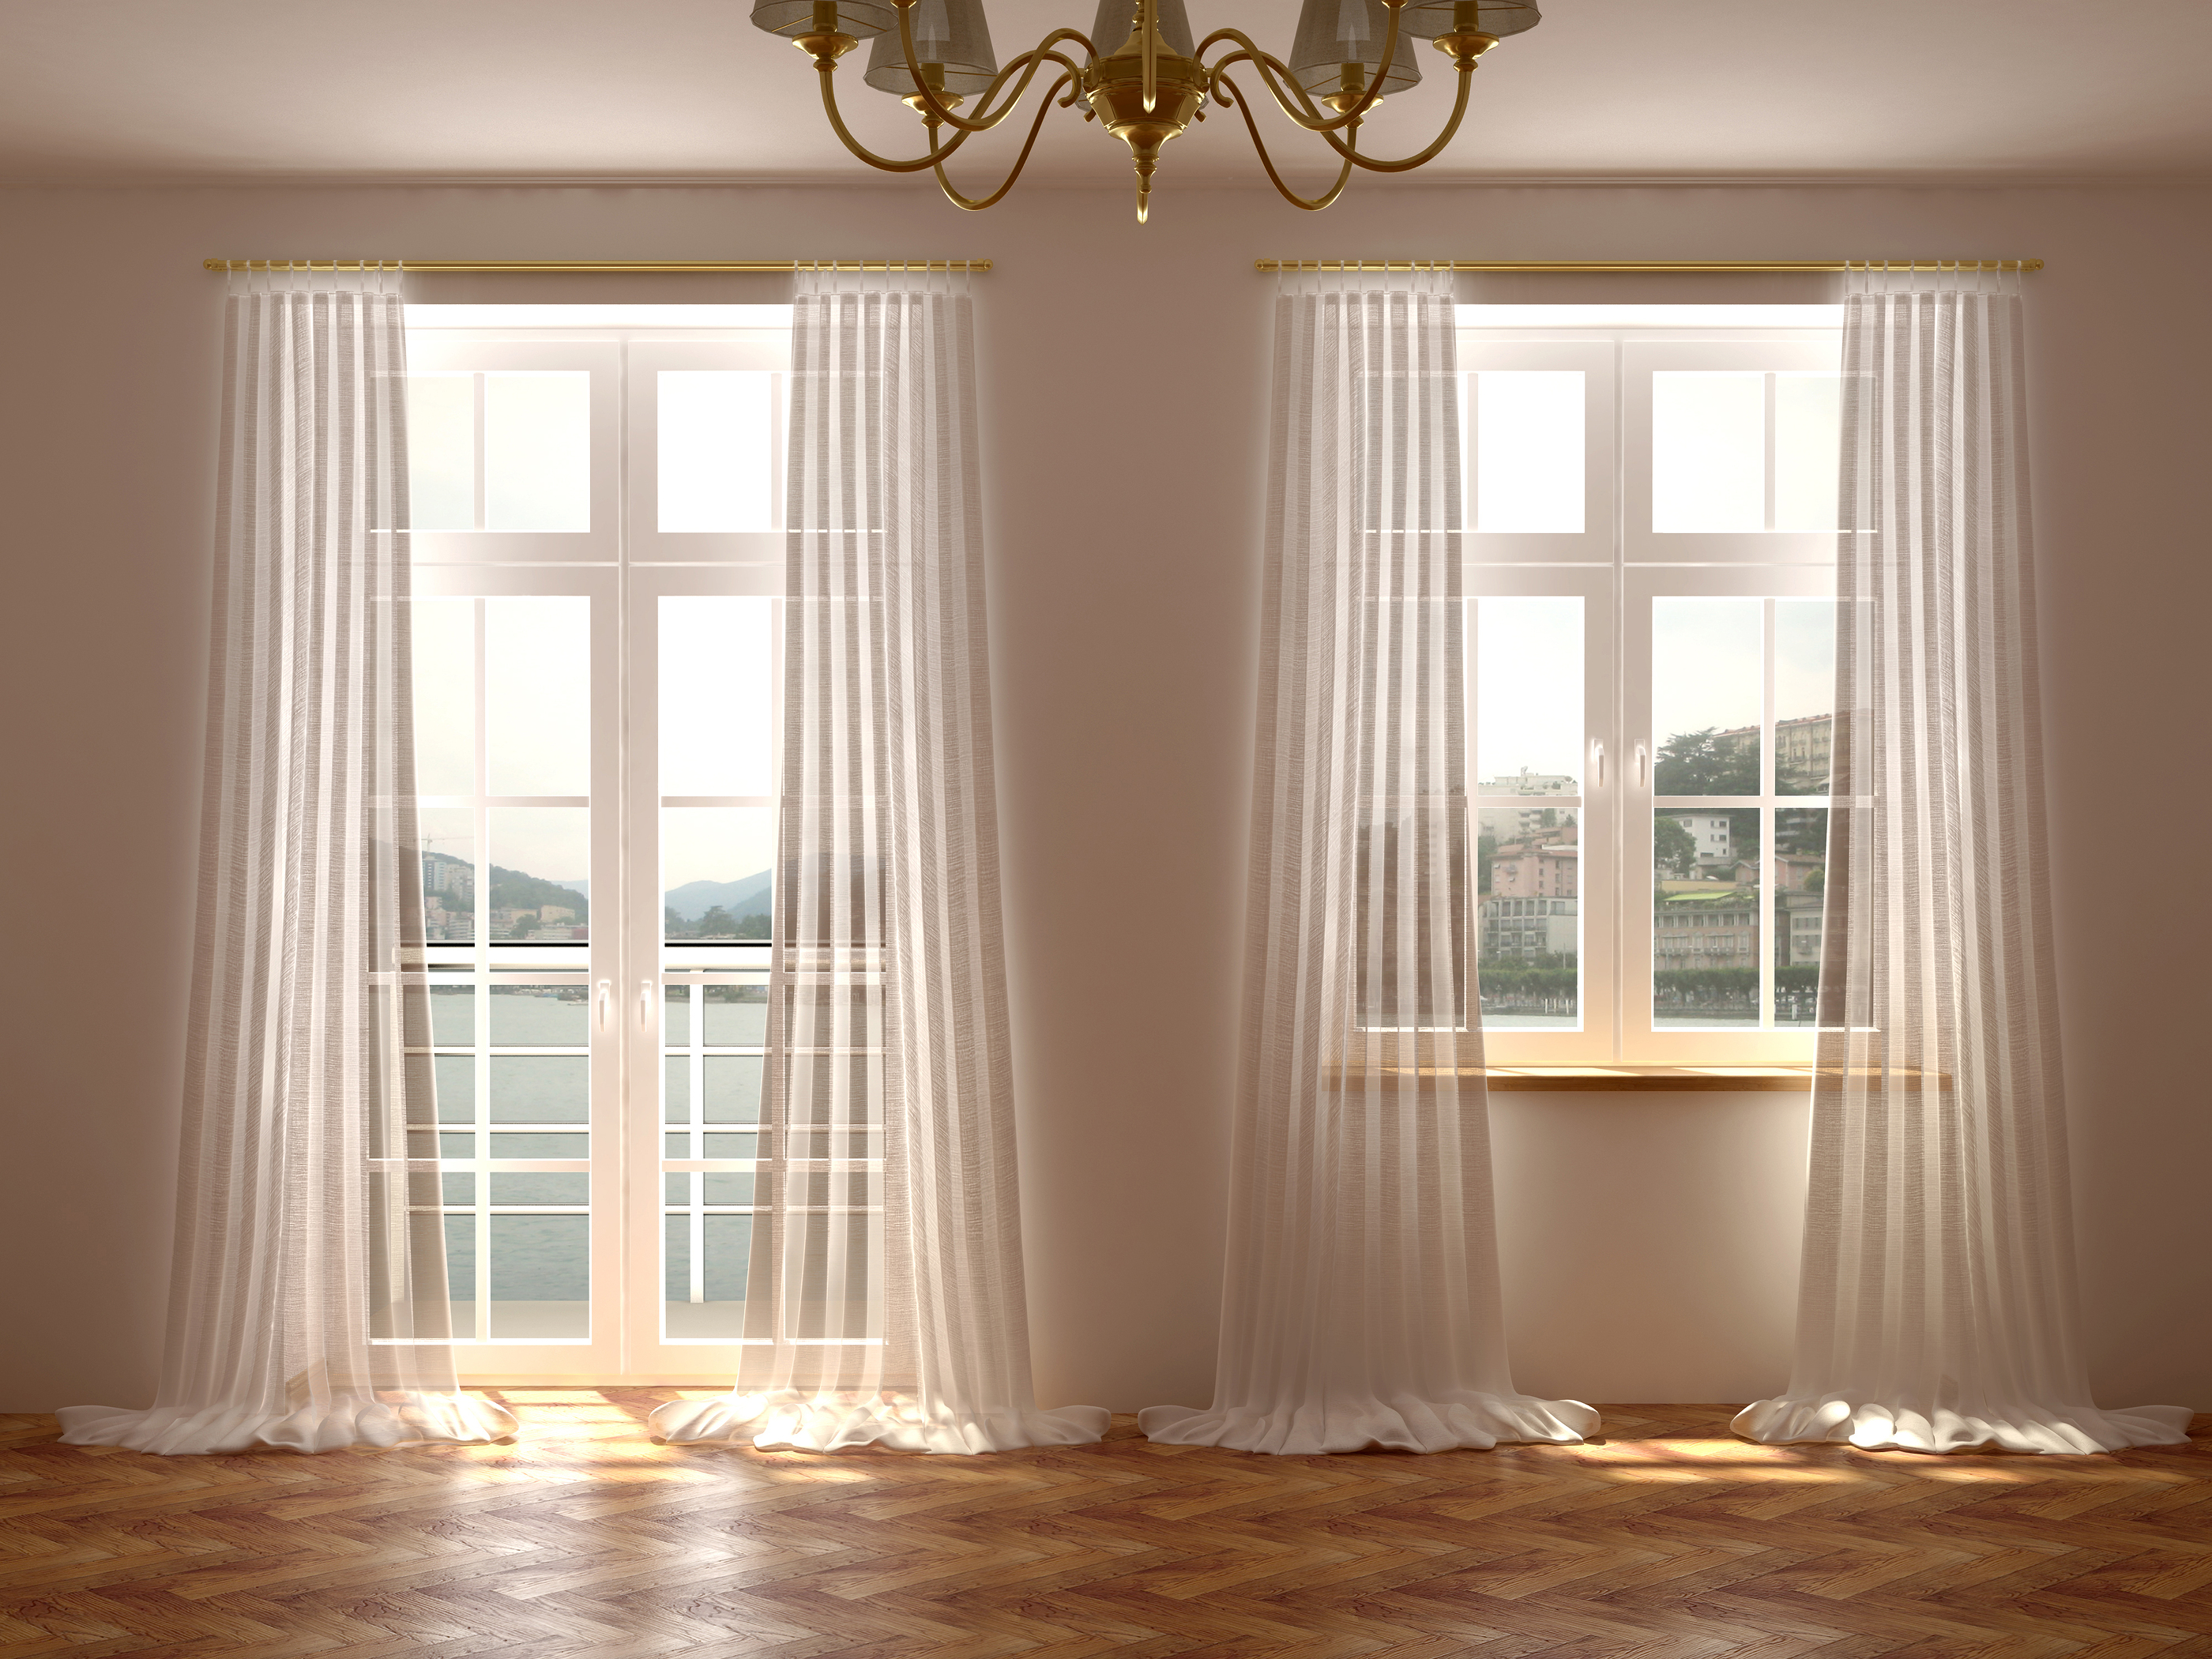 Curtains or blinds which is more luxurious for your home for Window design interiors